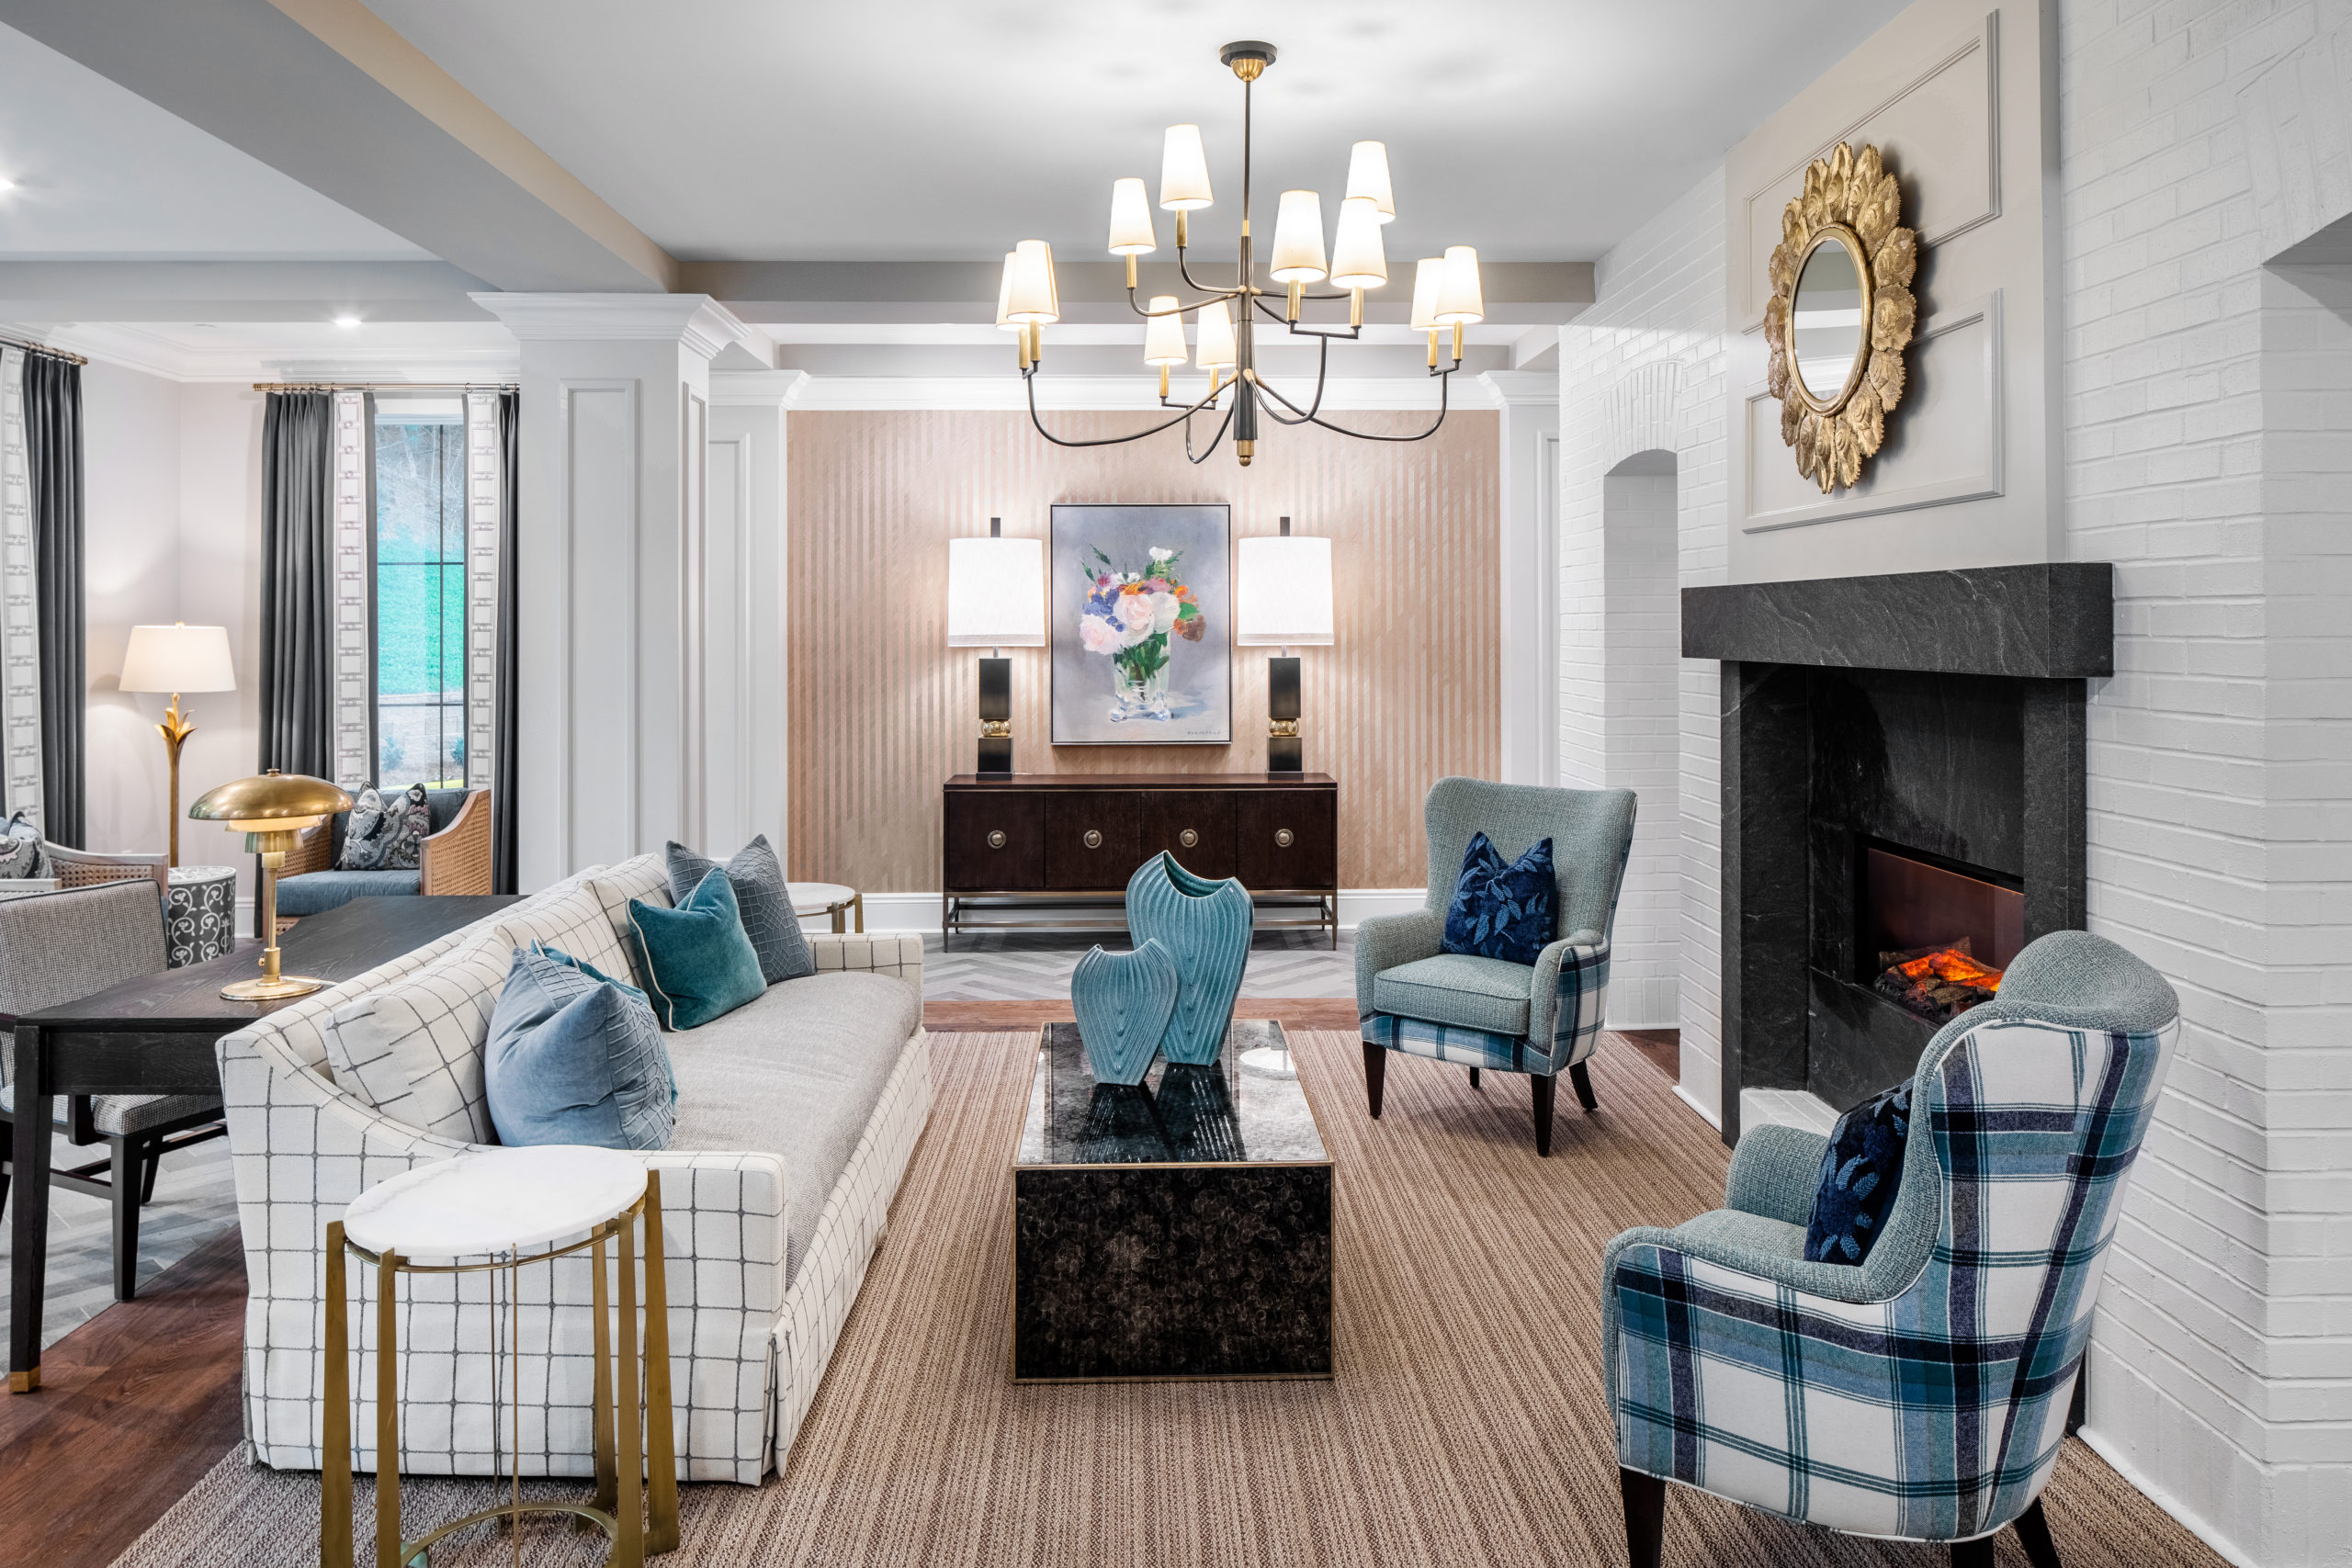 White plaid sofa, black ottoman, blue plaid chairs in front of fireplace in Longleaf common area